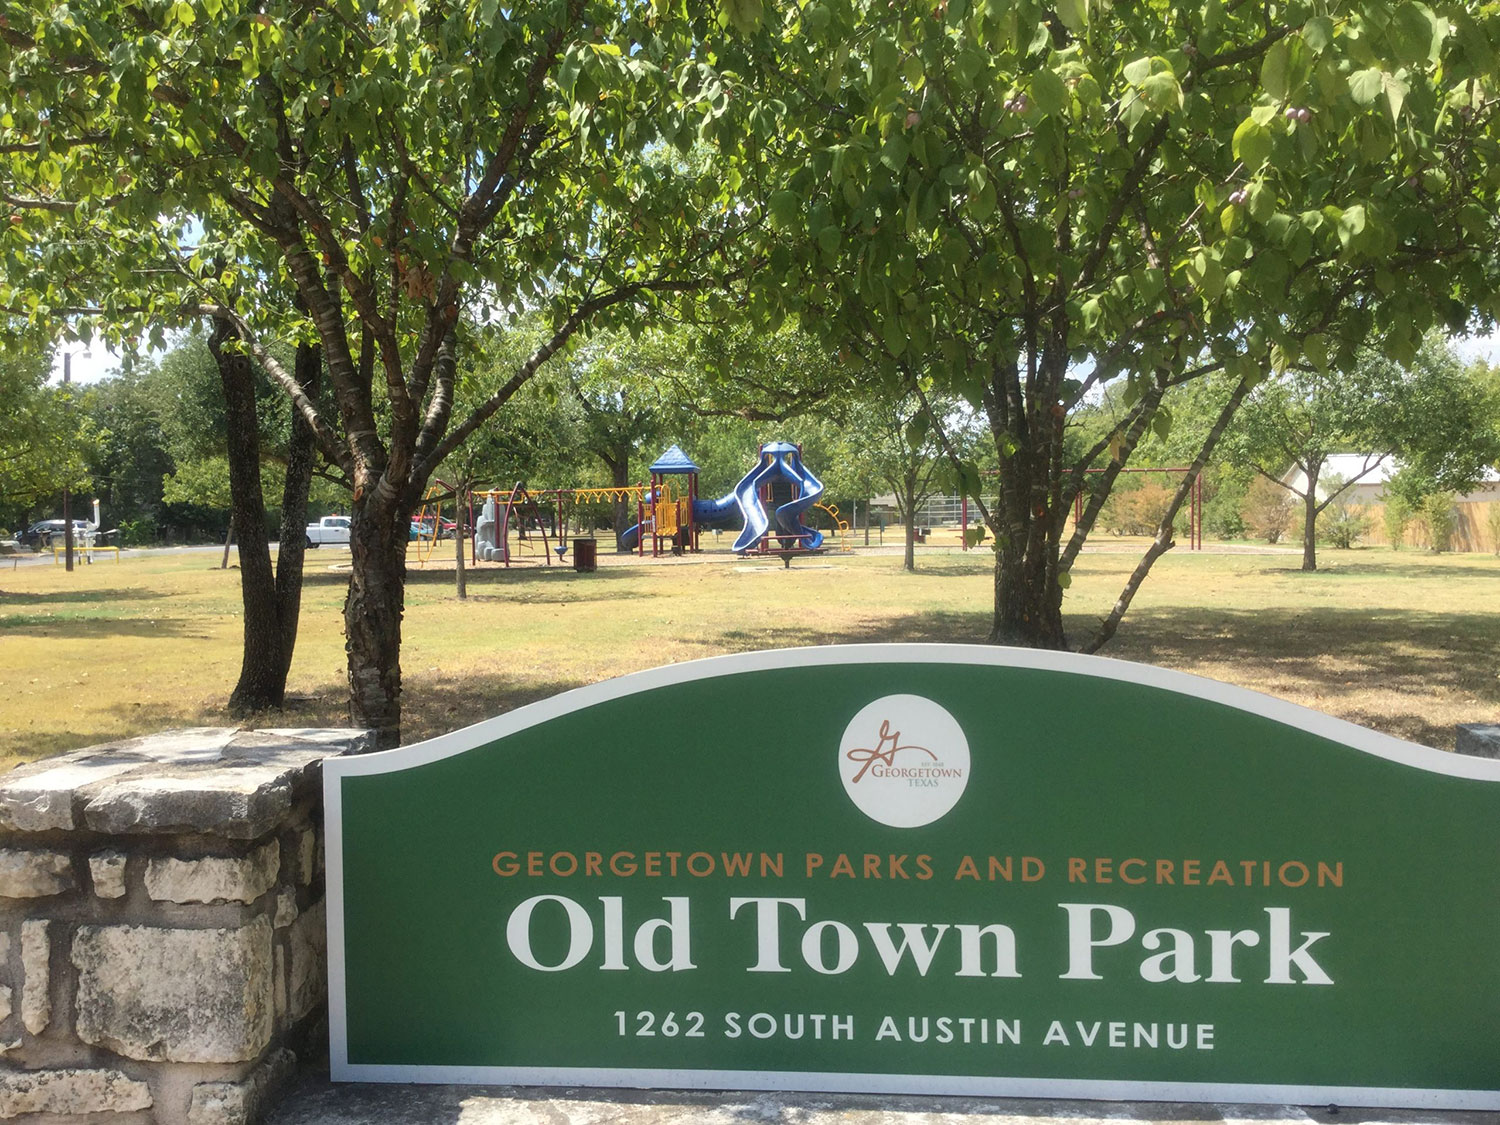 Entrance sign for Old Town Park in Georgetown, TX with playscape in the background